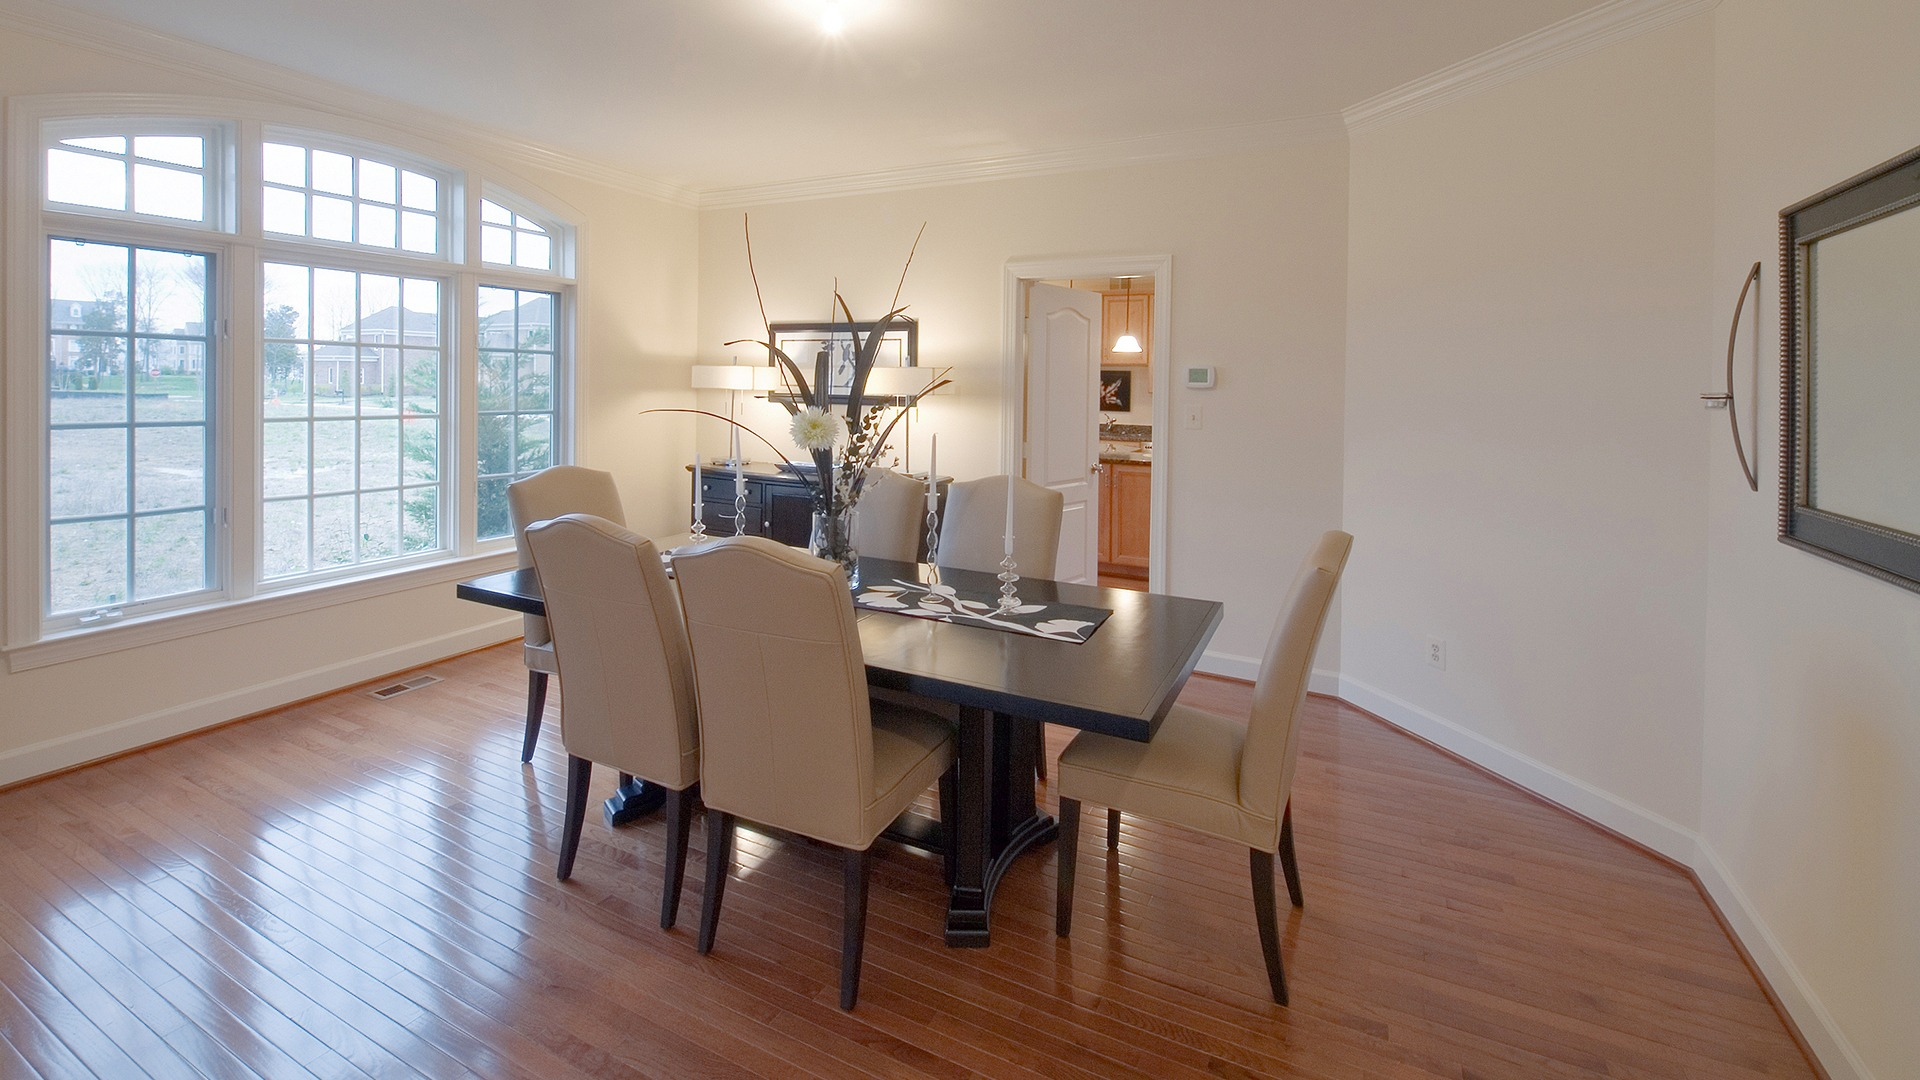 The Dining Room in the Hampton model in Brambleton. Some options shown.